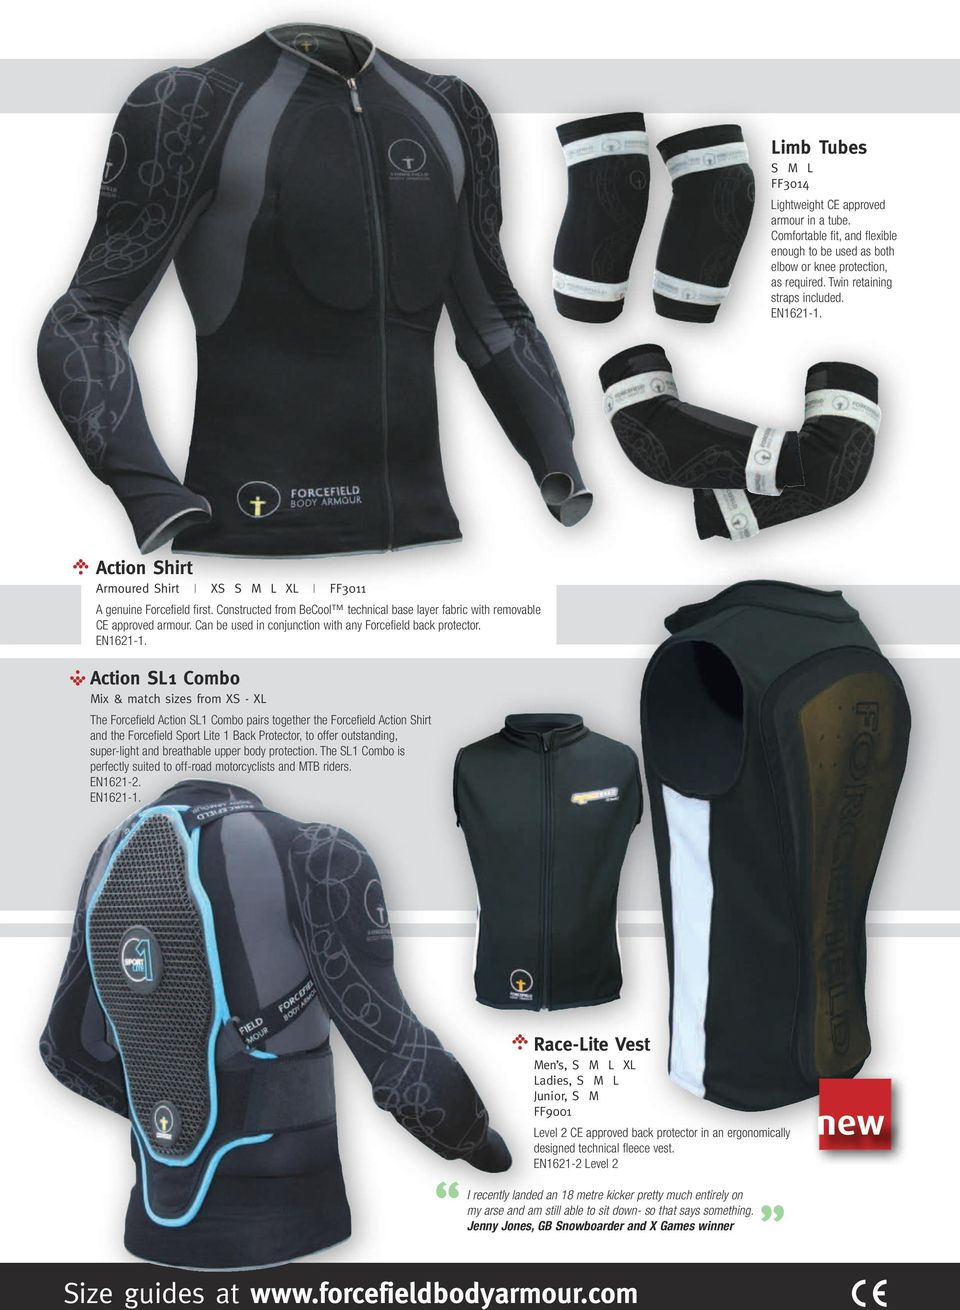 Can be used in conjunction with any Forcefield back protector.